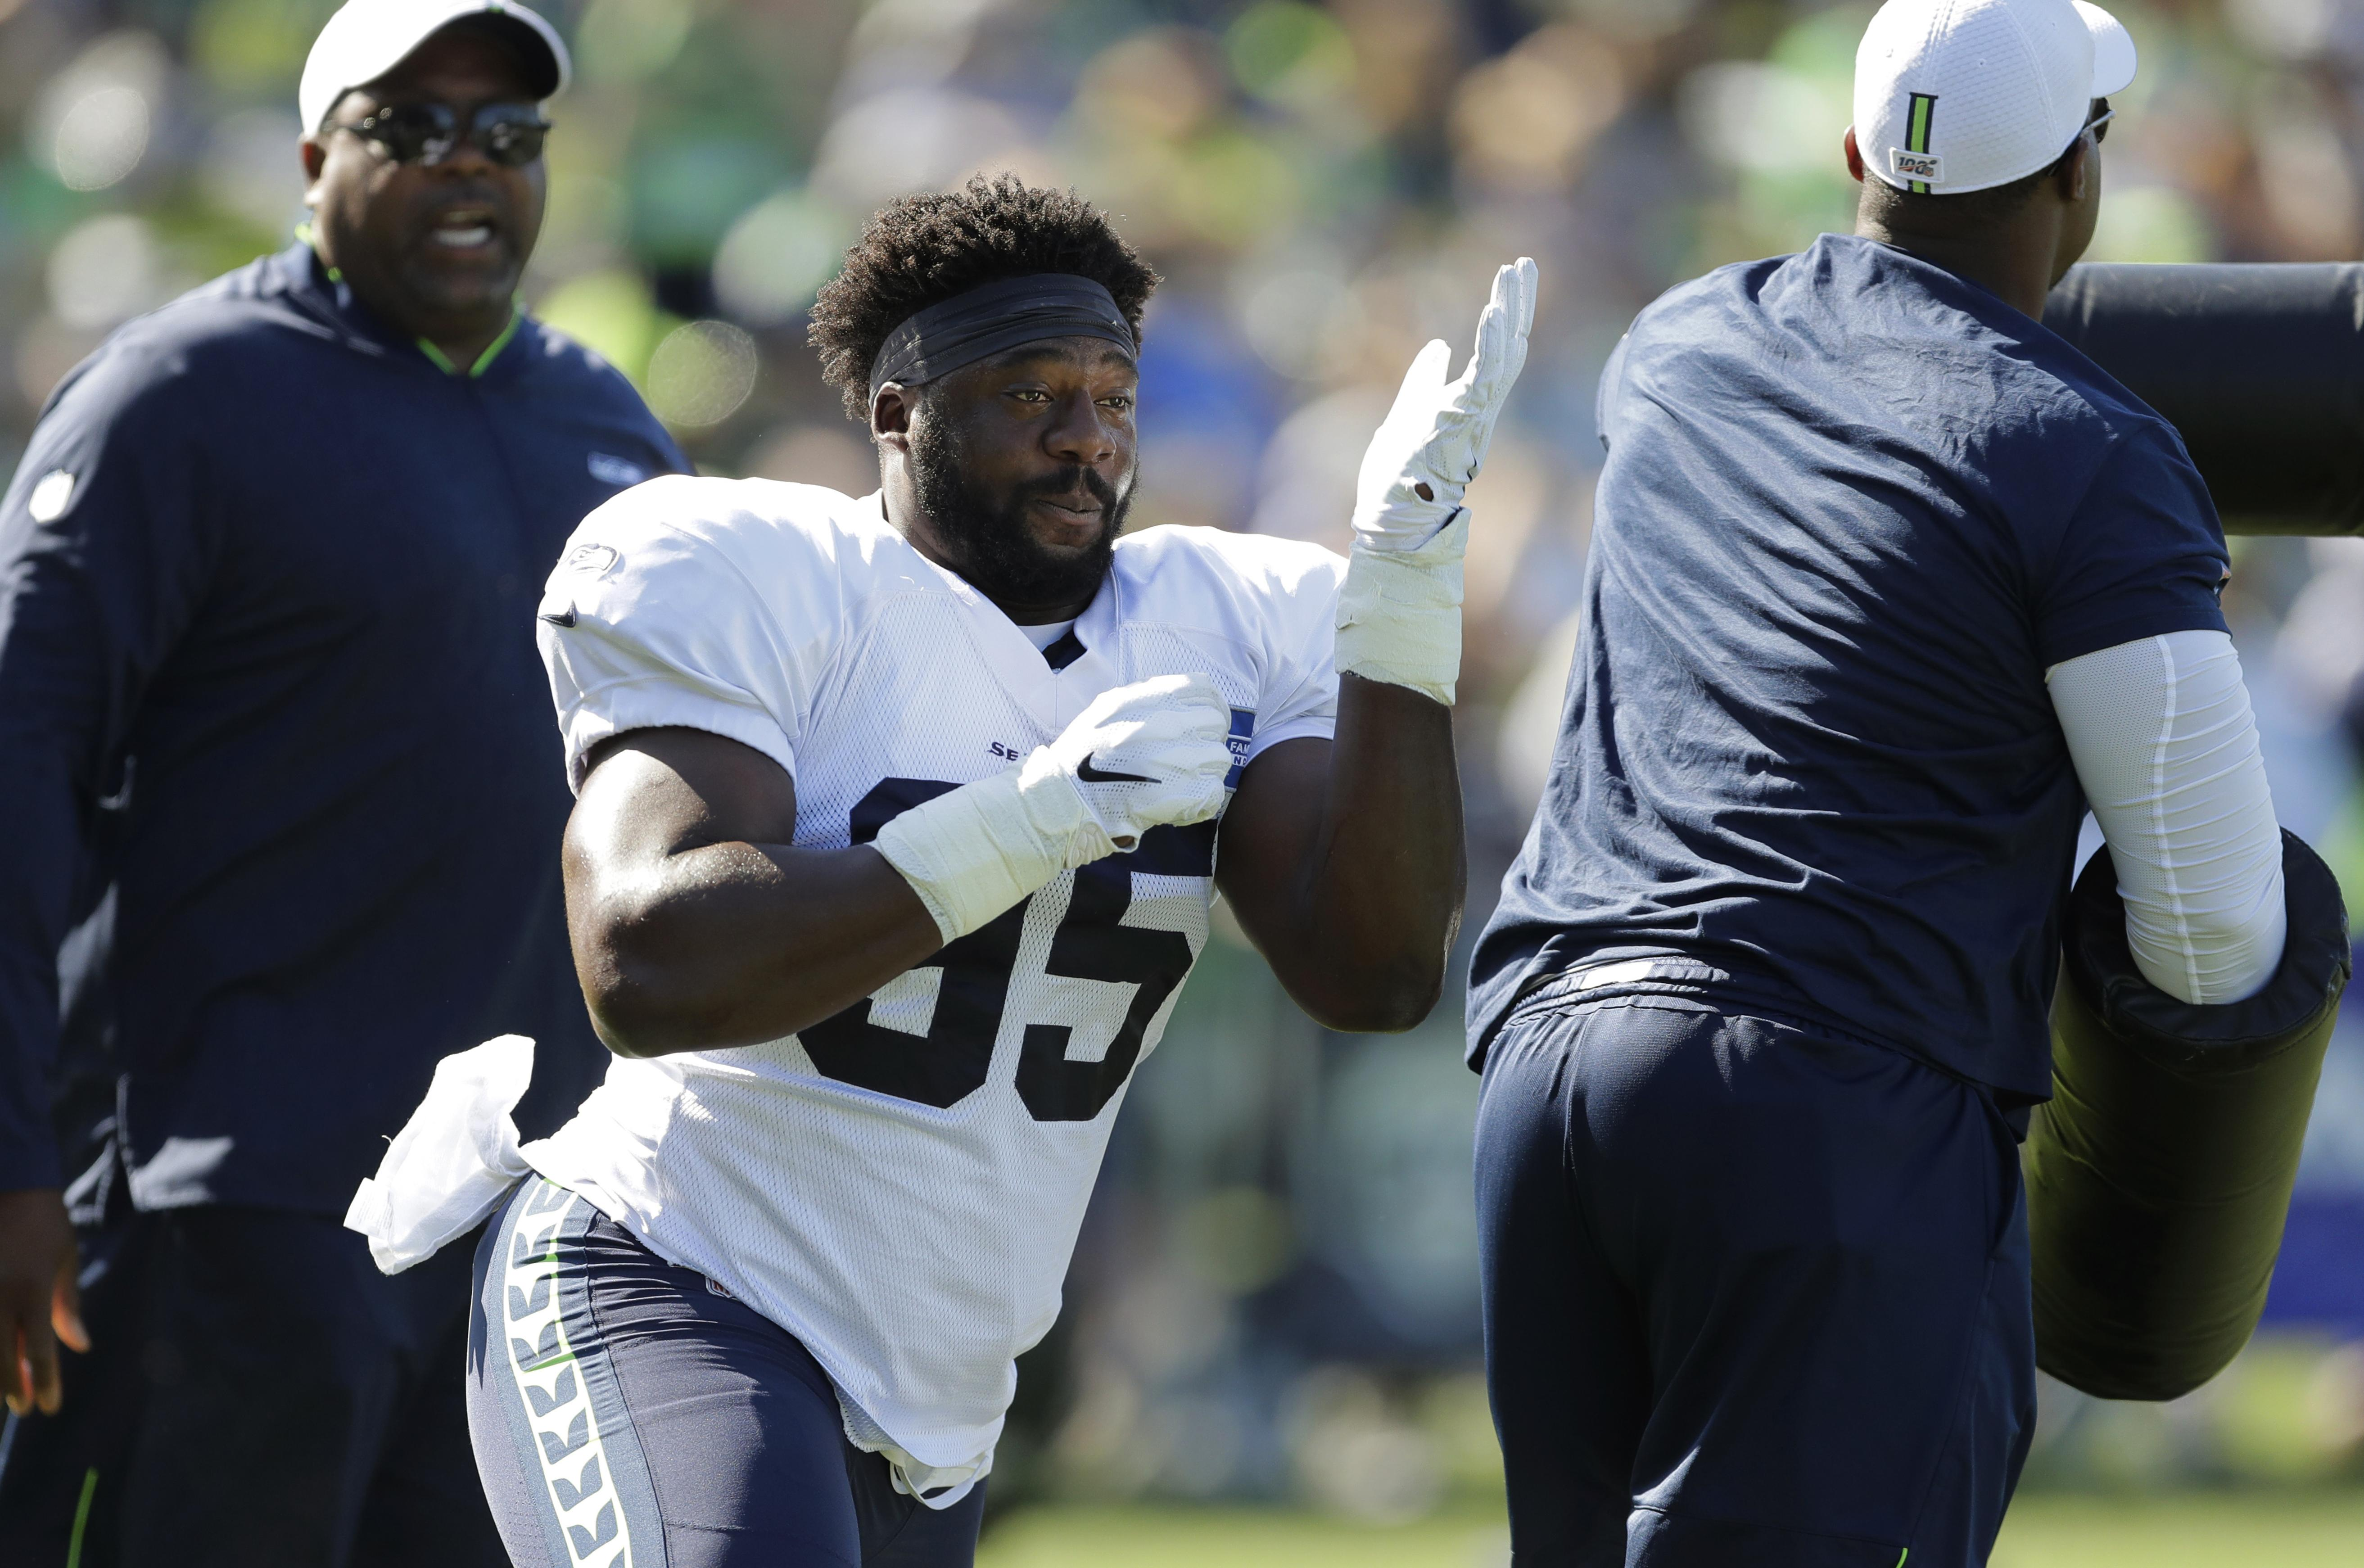 Seattle Seahawks 2019 Draft Class Is Large But Has Run Into